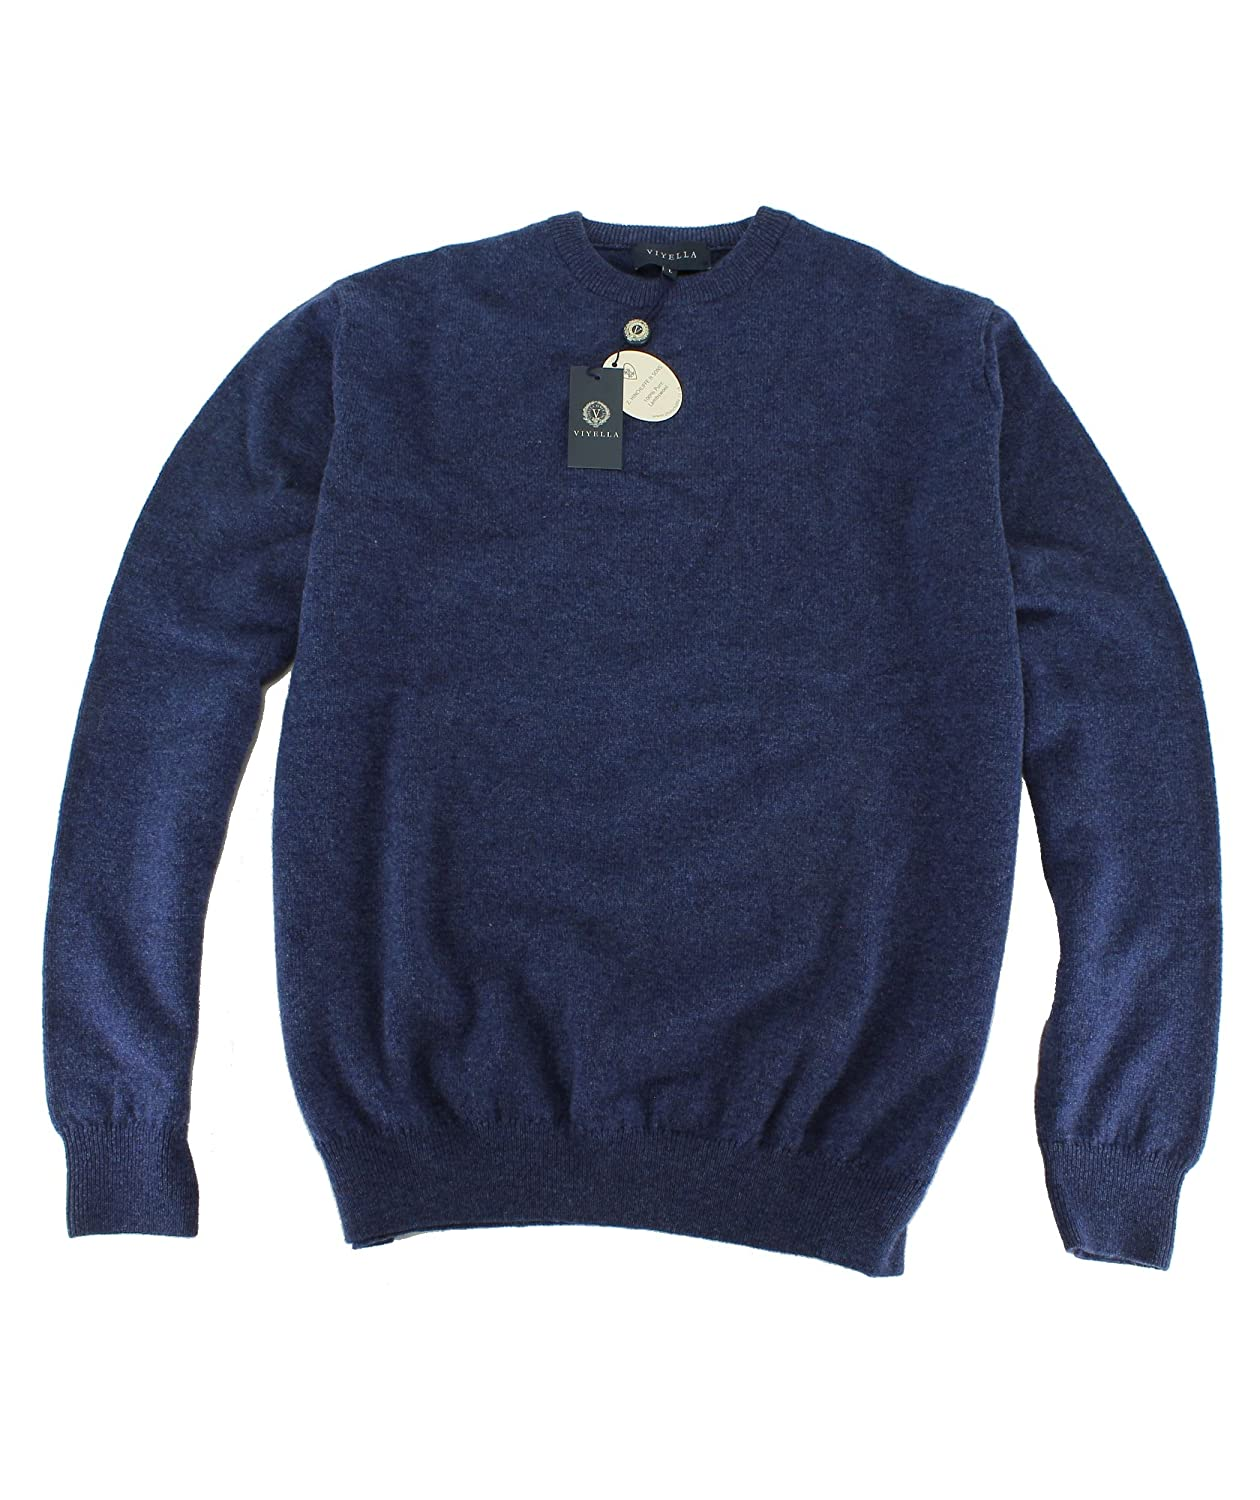 Viyela Plain Denim Blue Crew Neck Lambswool Jumper